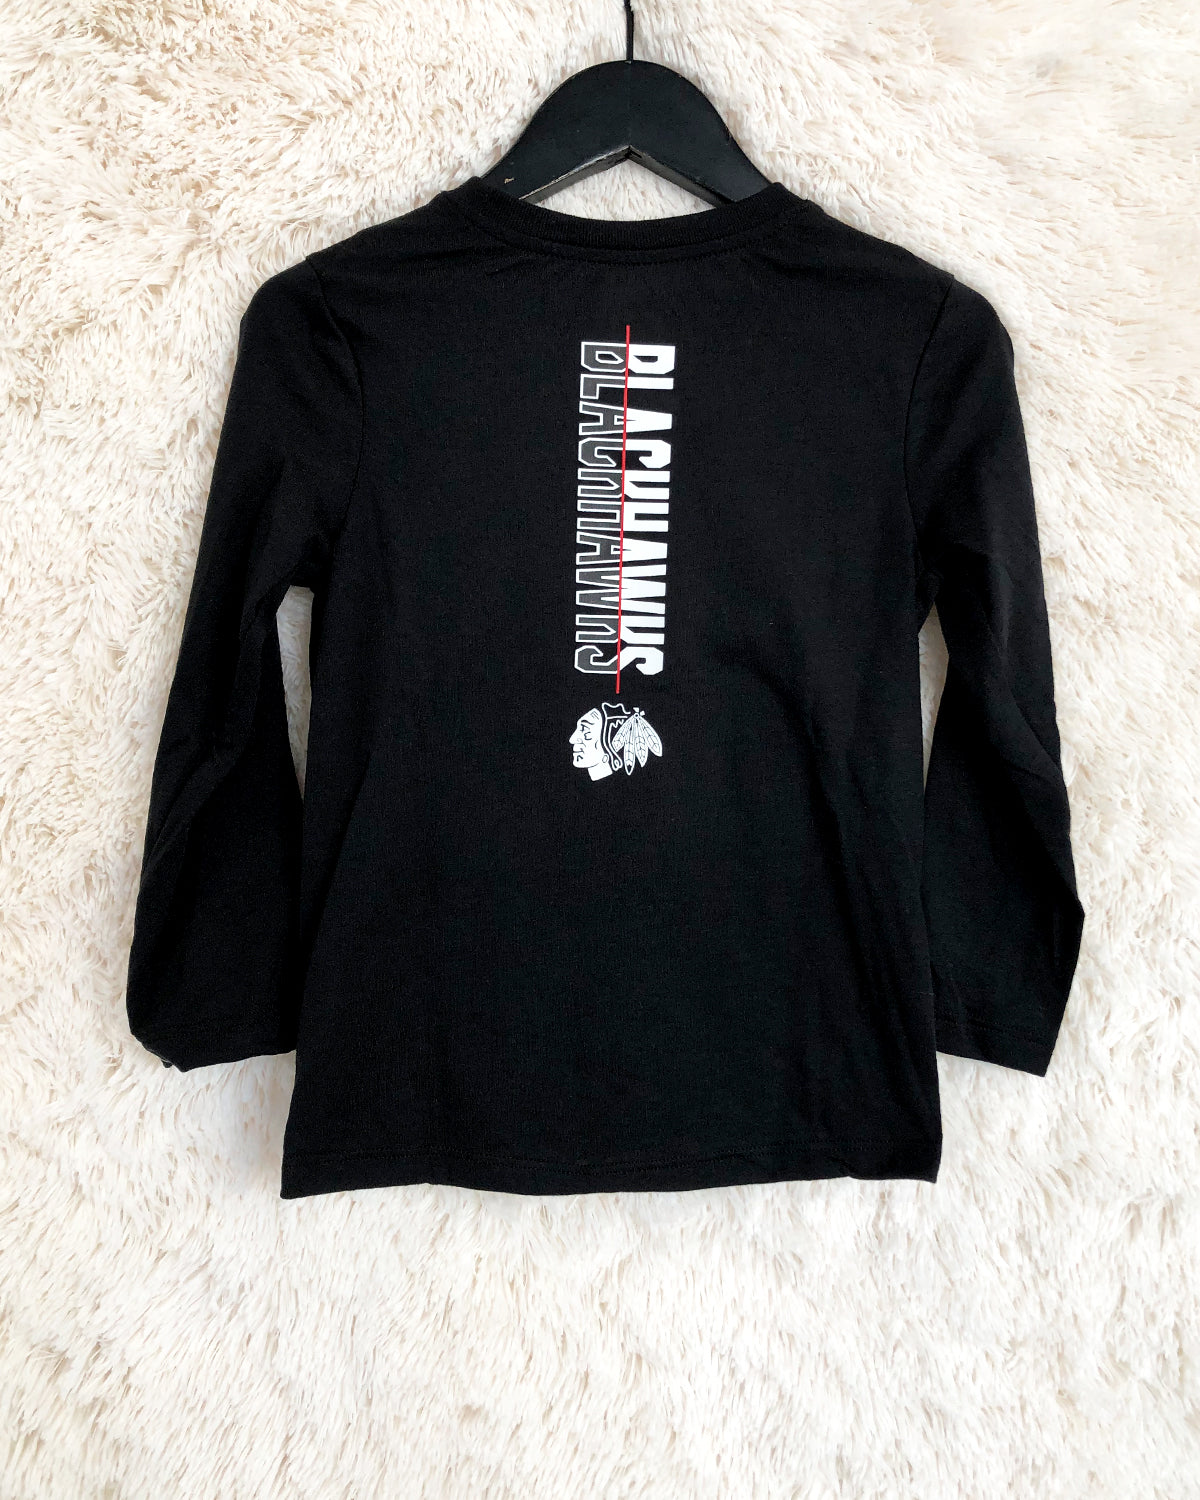 Juvenile Outerstuff Black Wordmark Long Sleeve